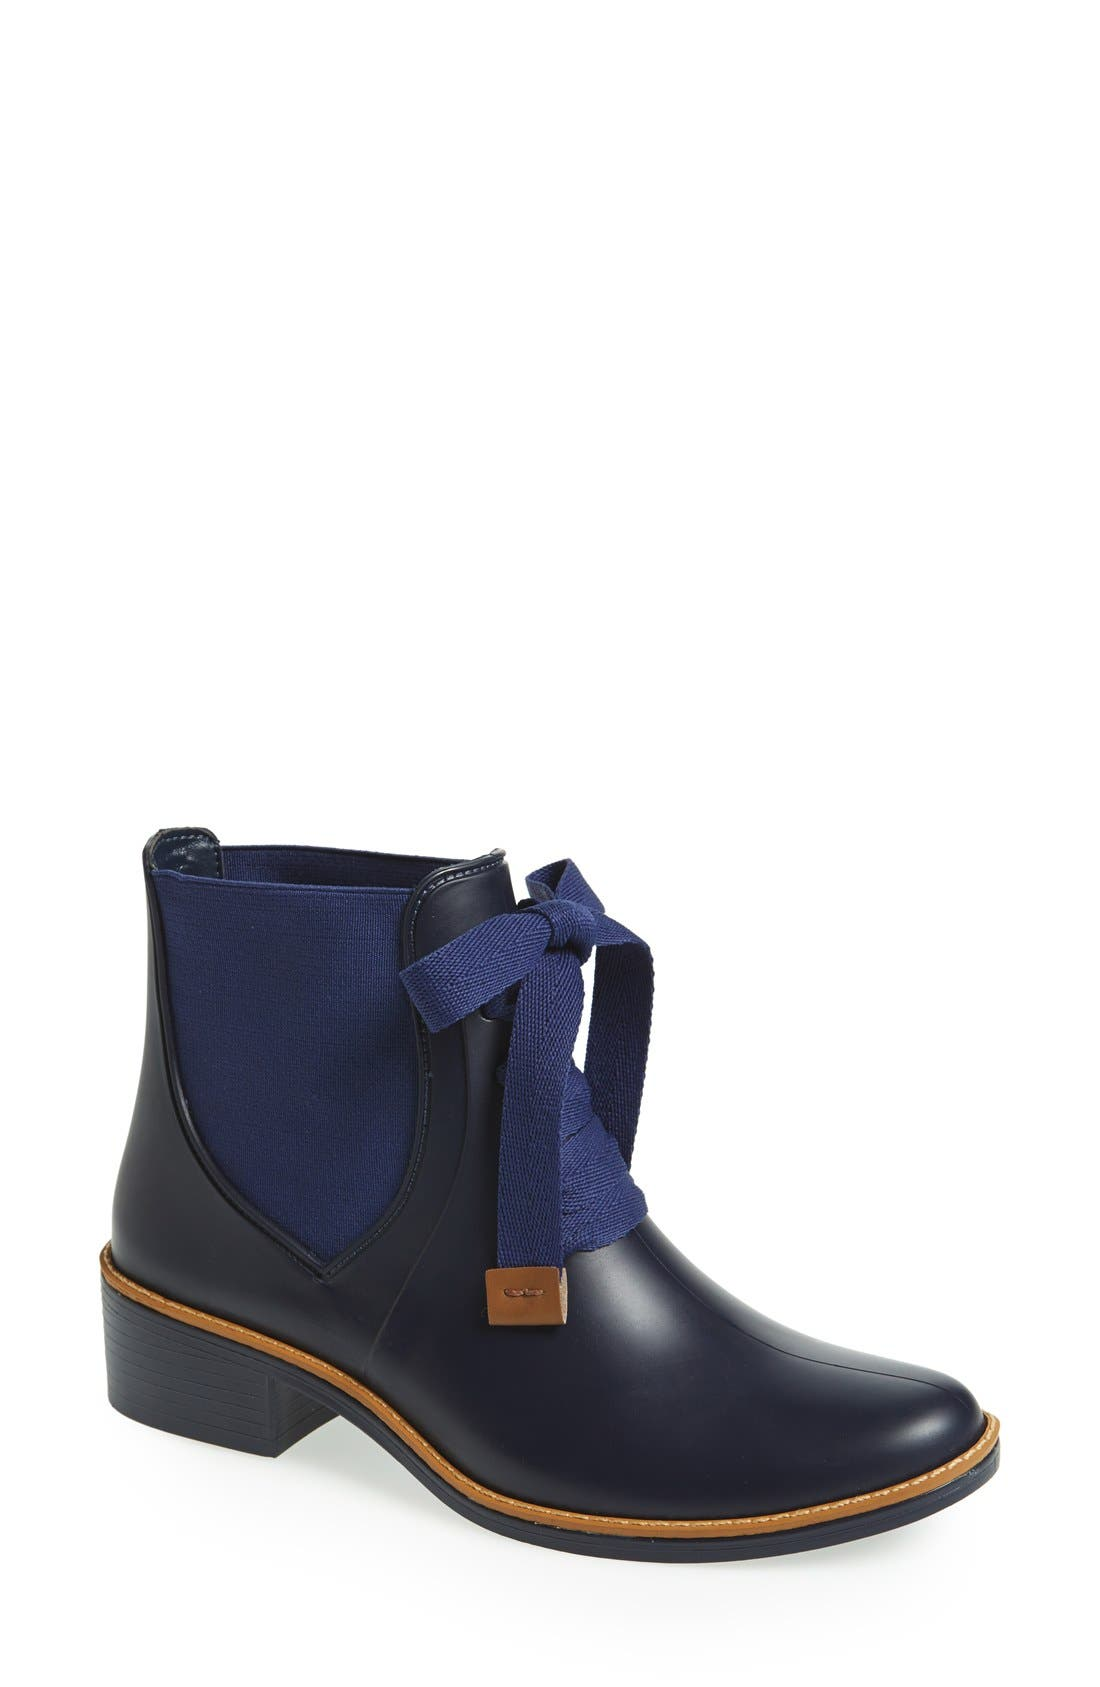 Alternate Image 1 Selected - Bernardo Lacey Short Waterproof Rain Boot (Women)